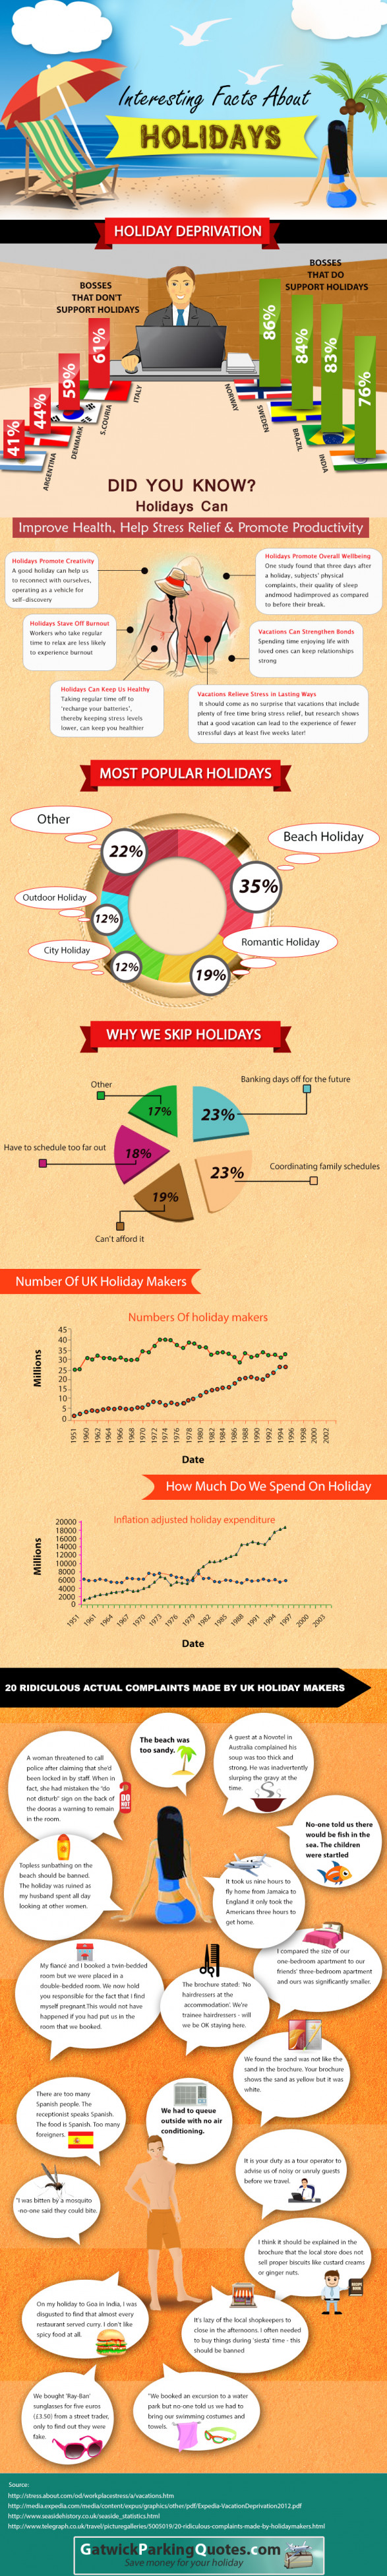 Interesting Facts About Holidays